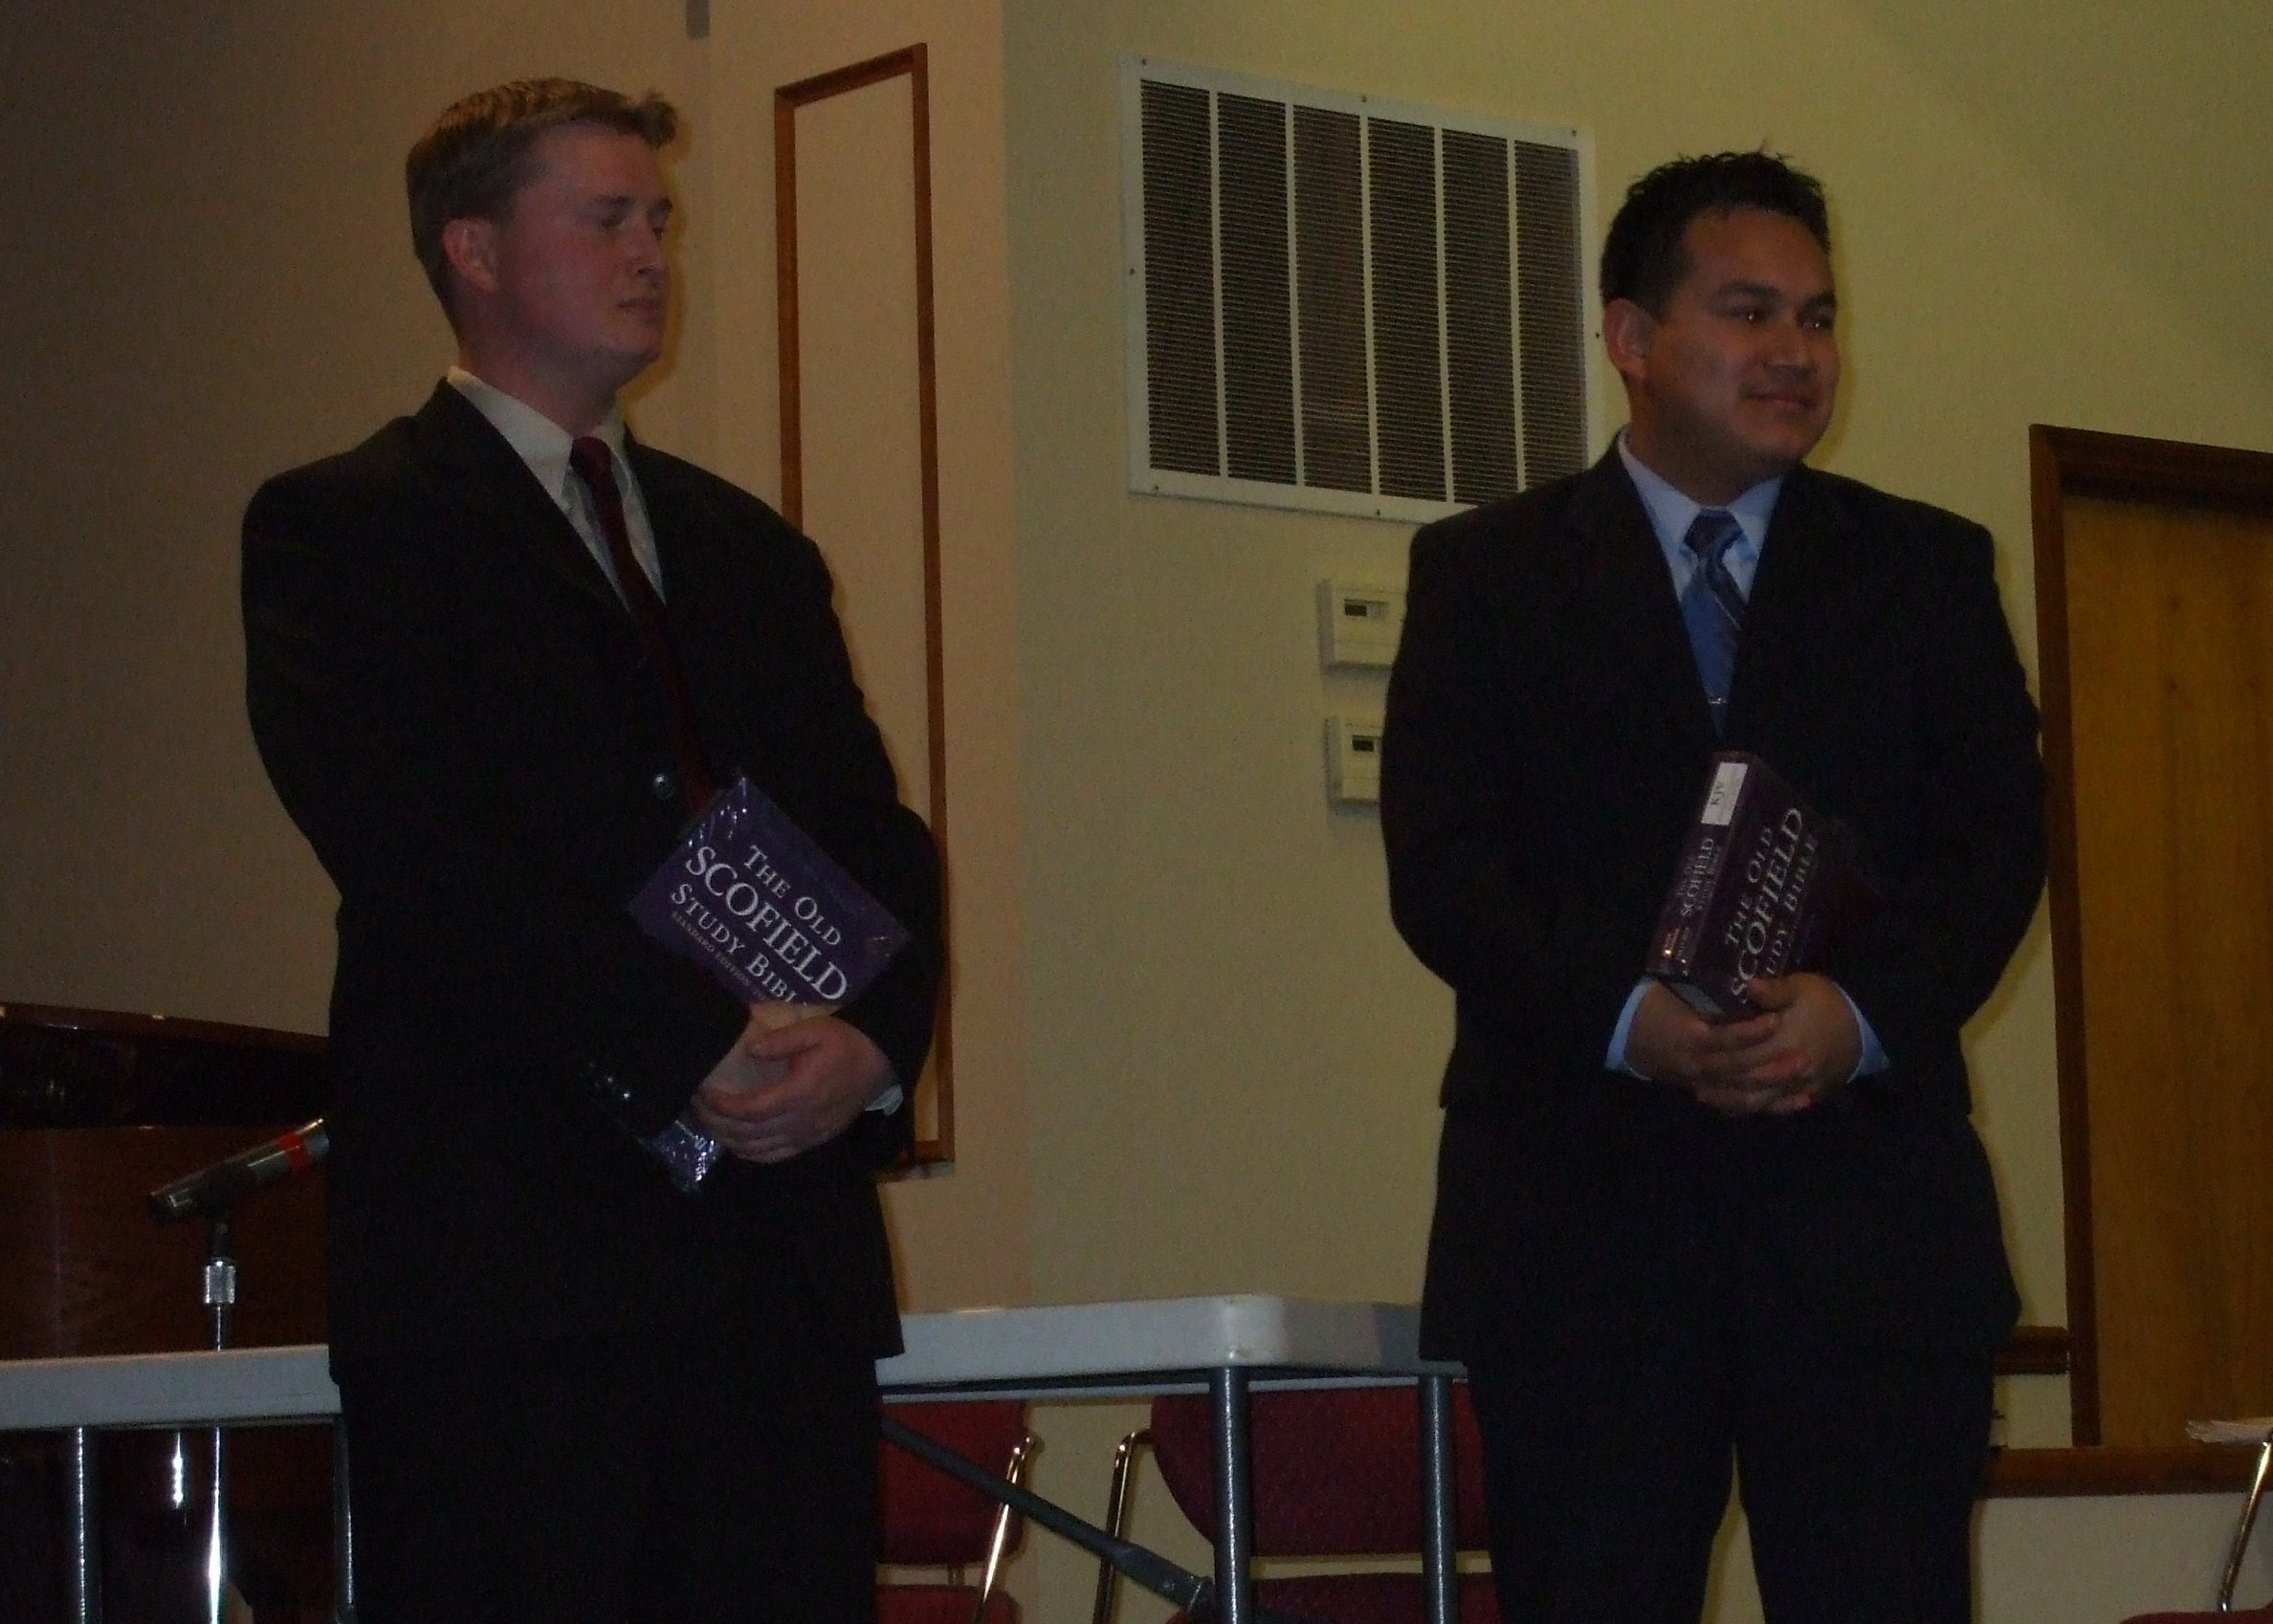 John and Ale with their new Bibles